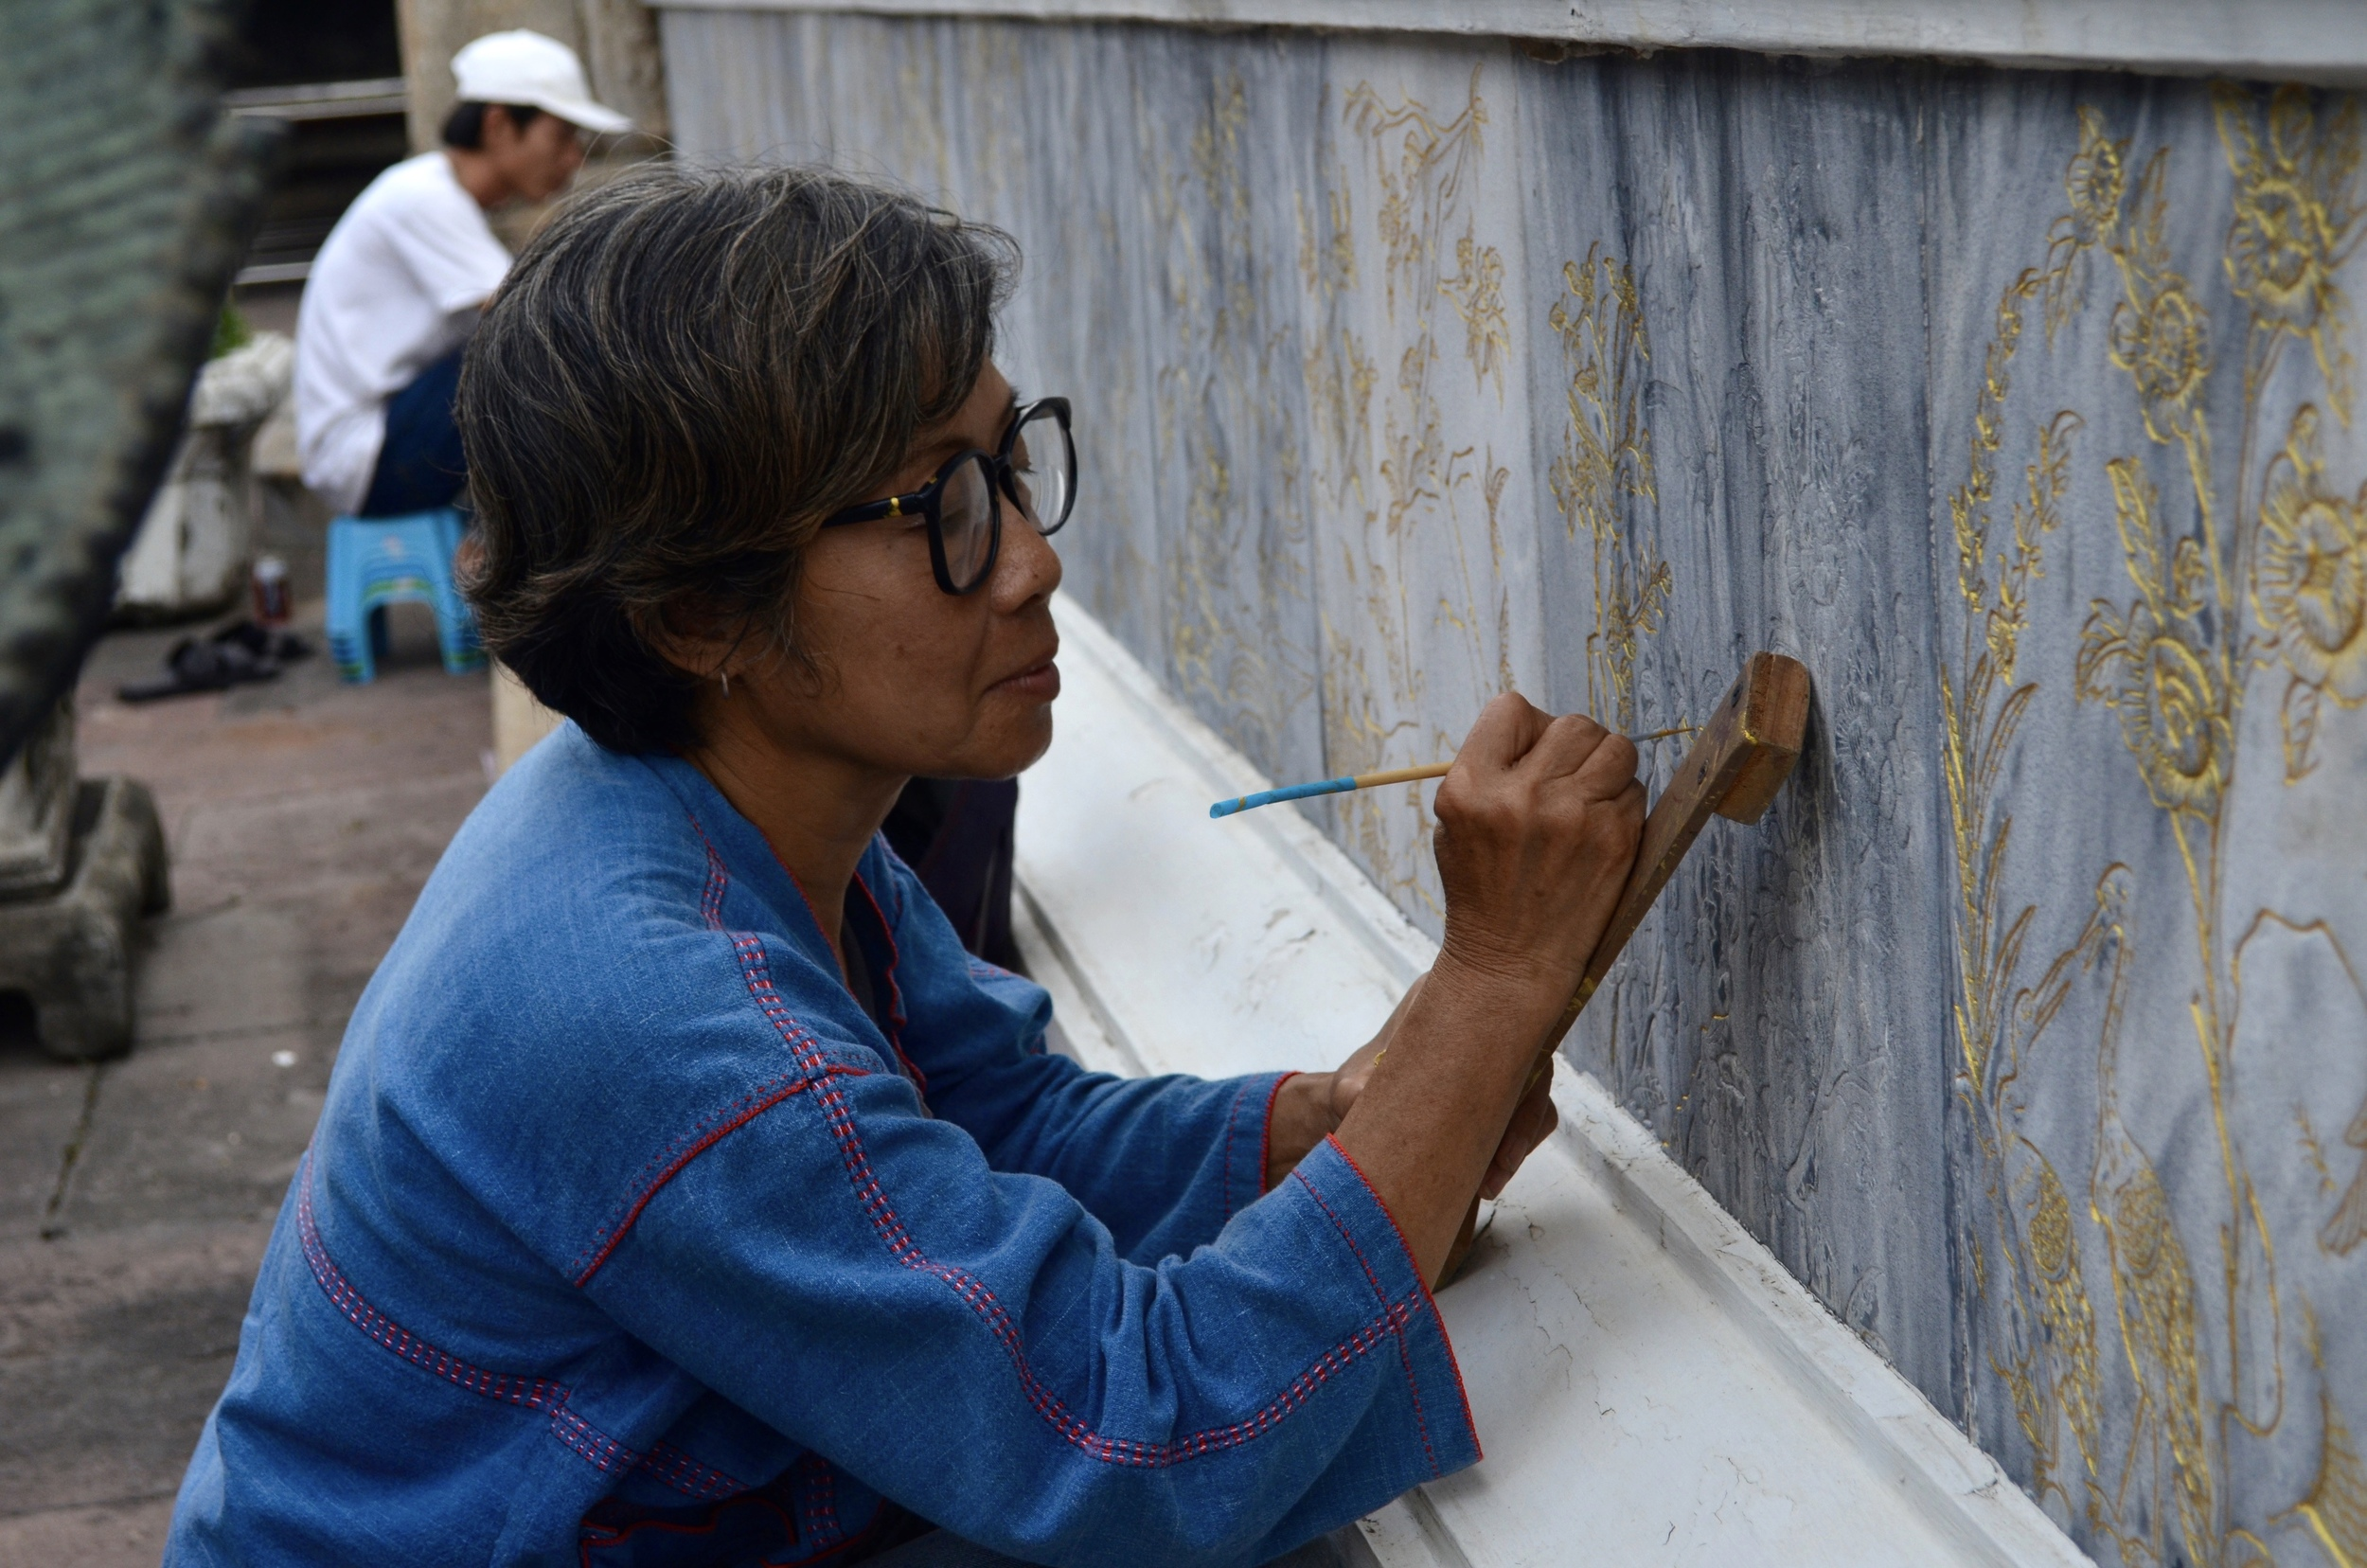 This painter, was working on a temple wall in Bangkok. She was pleased when I asked to take her photo, and then inquired about her job and the process.